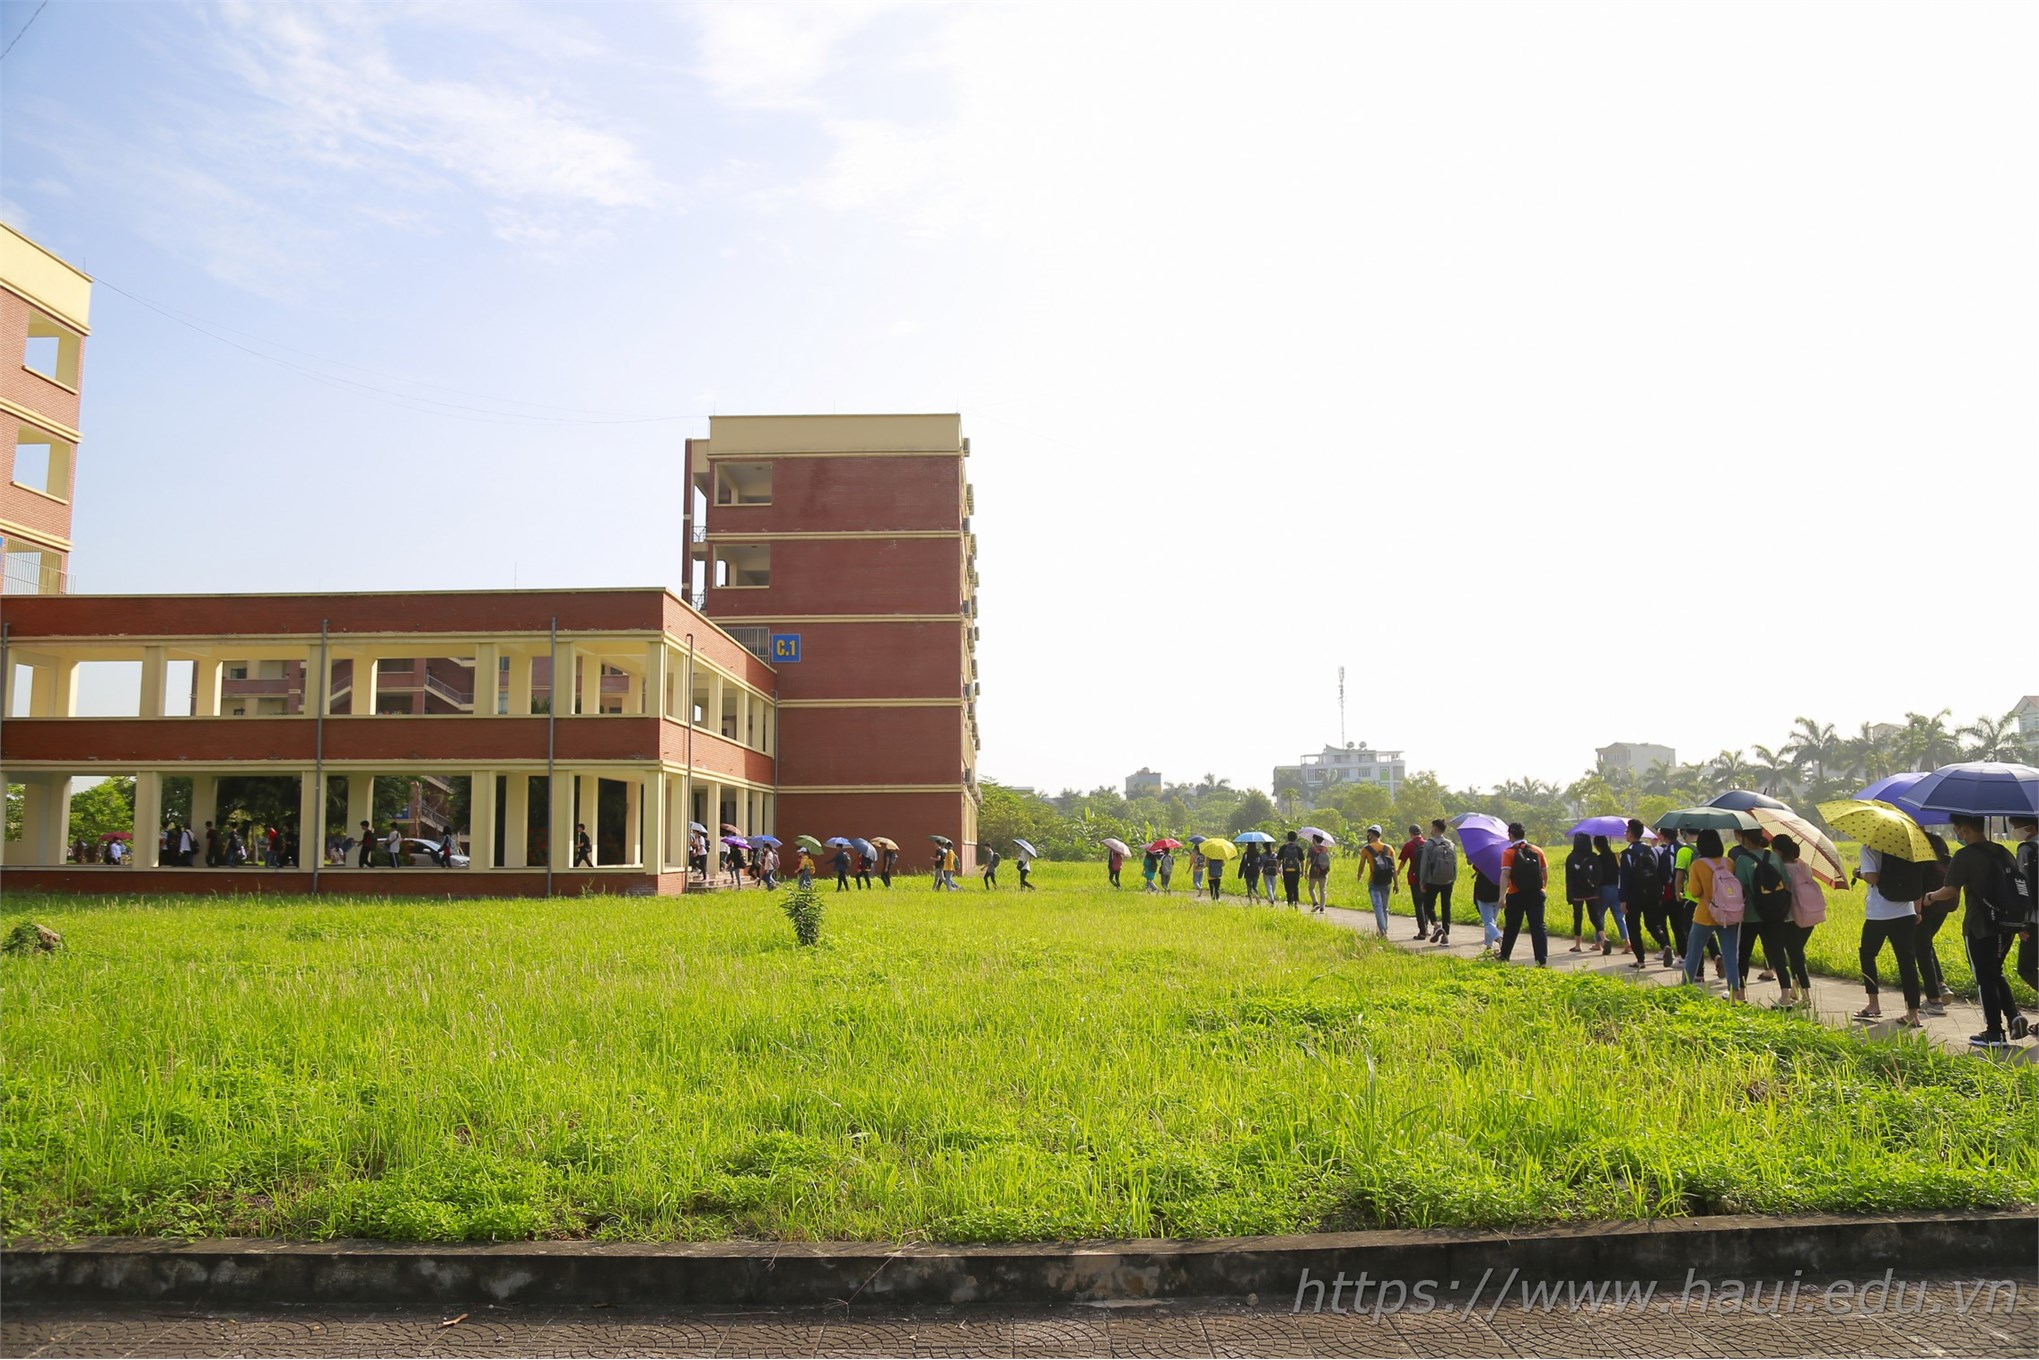 HaUI Students back to school after COVID-19 break